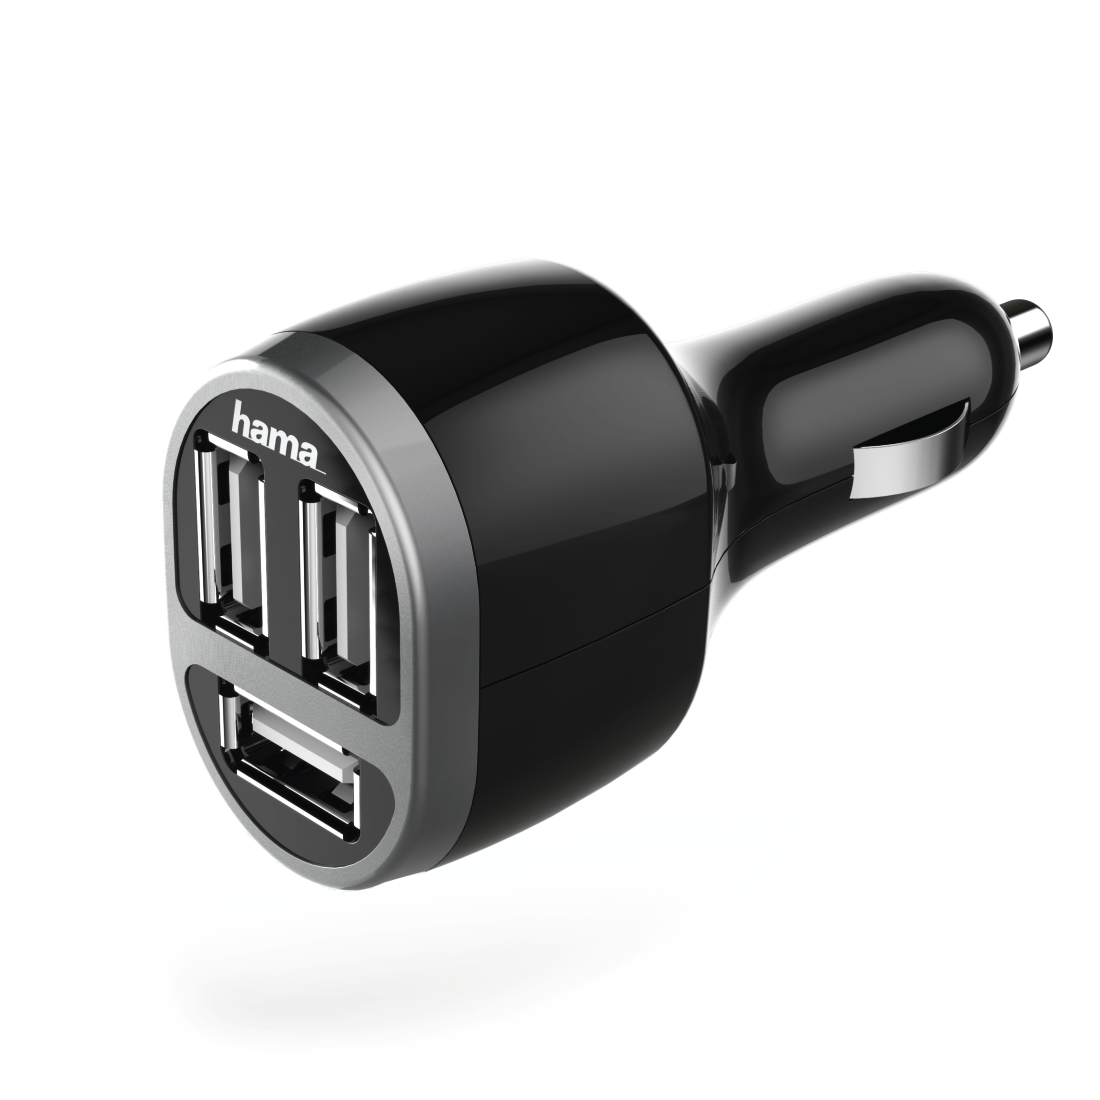 abx High-Res Image - Hama, Car Charger, 3x USB, 5.2 A, black